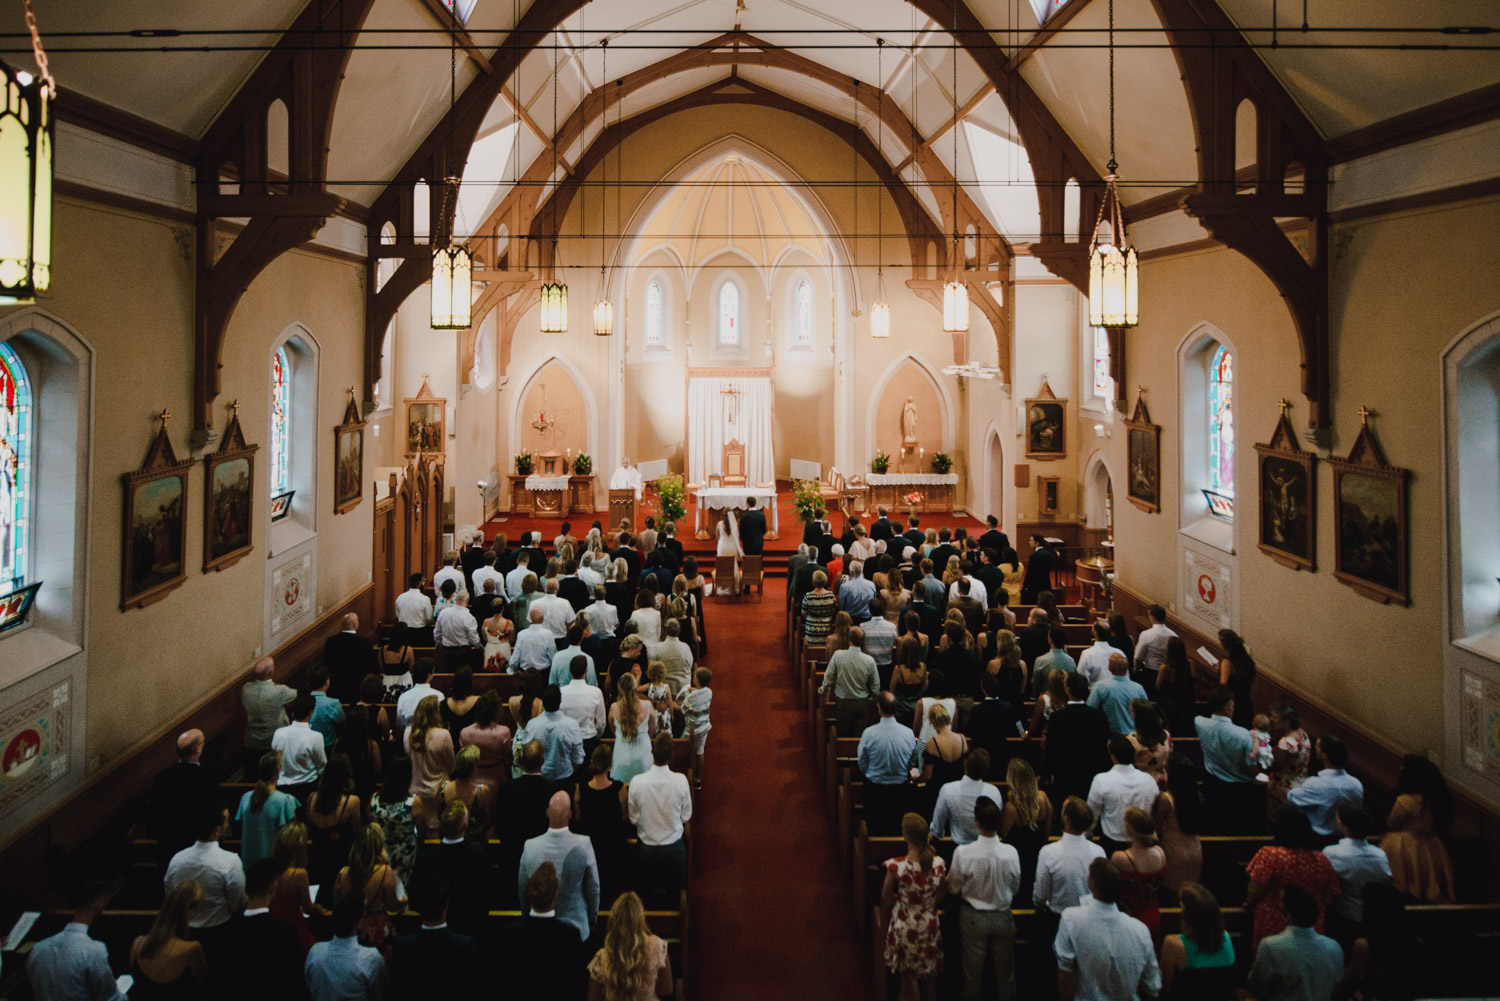 The guests and bride and groom all stand in the church during the ceremony